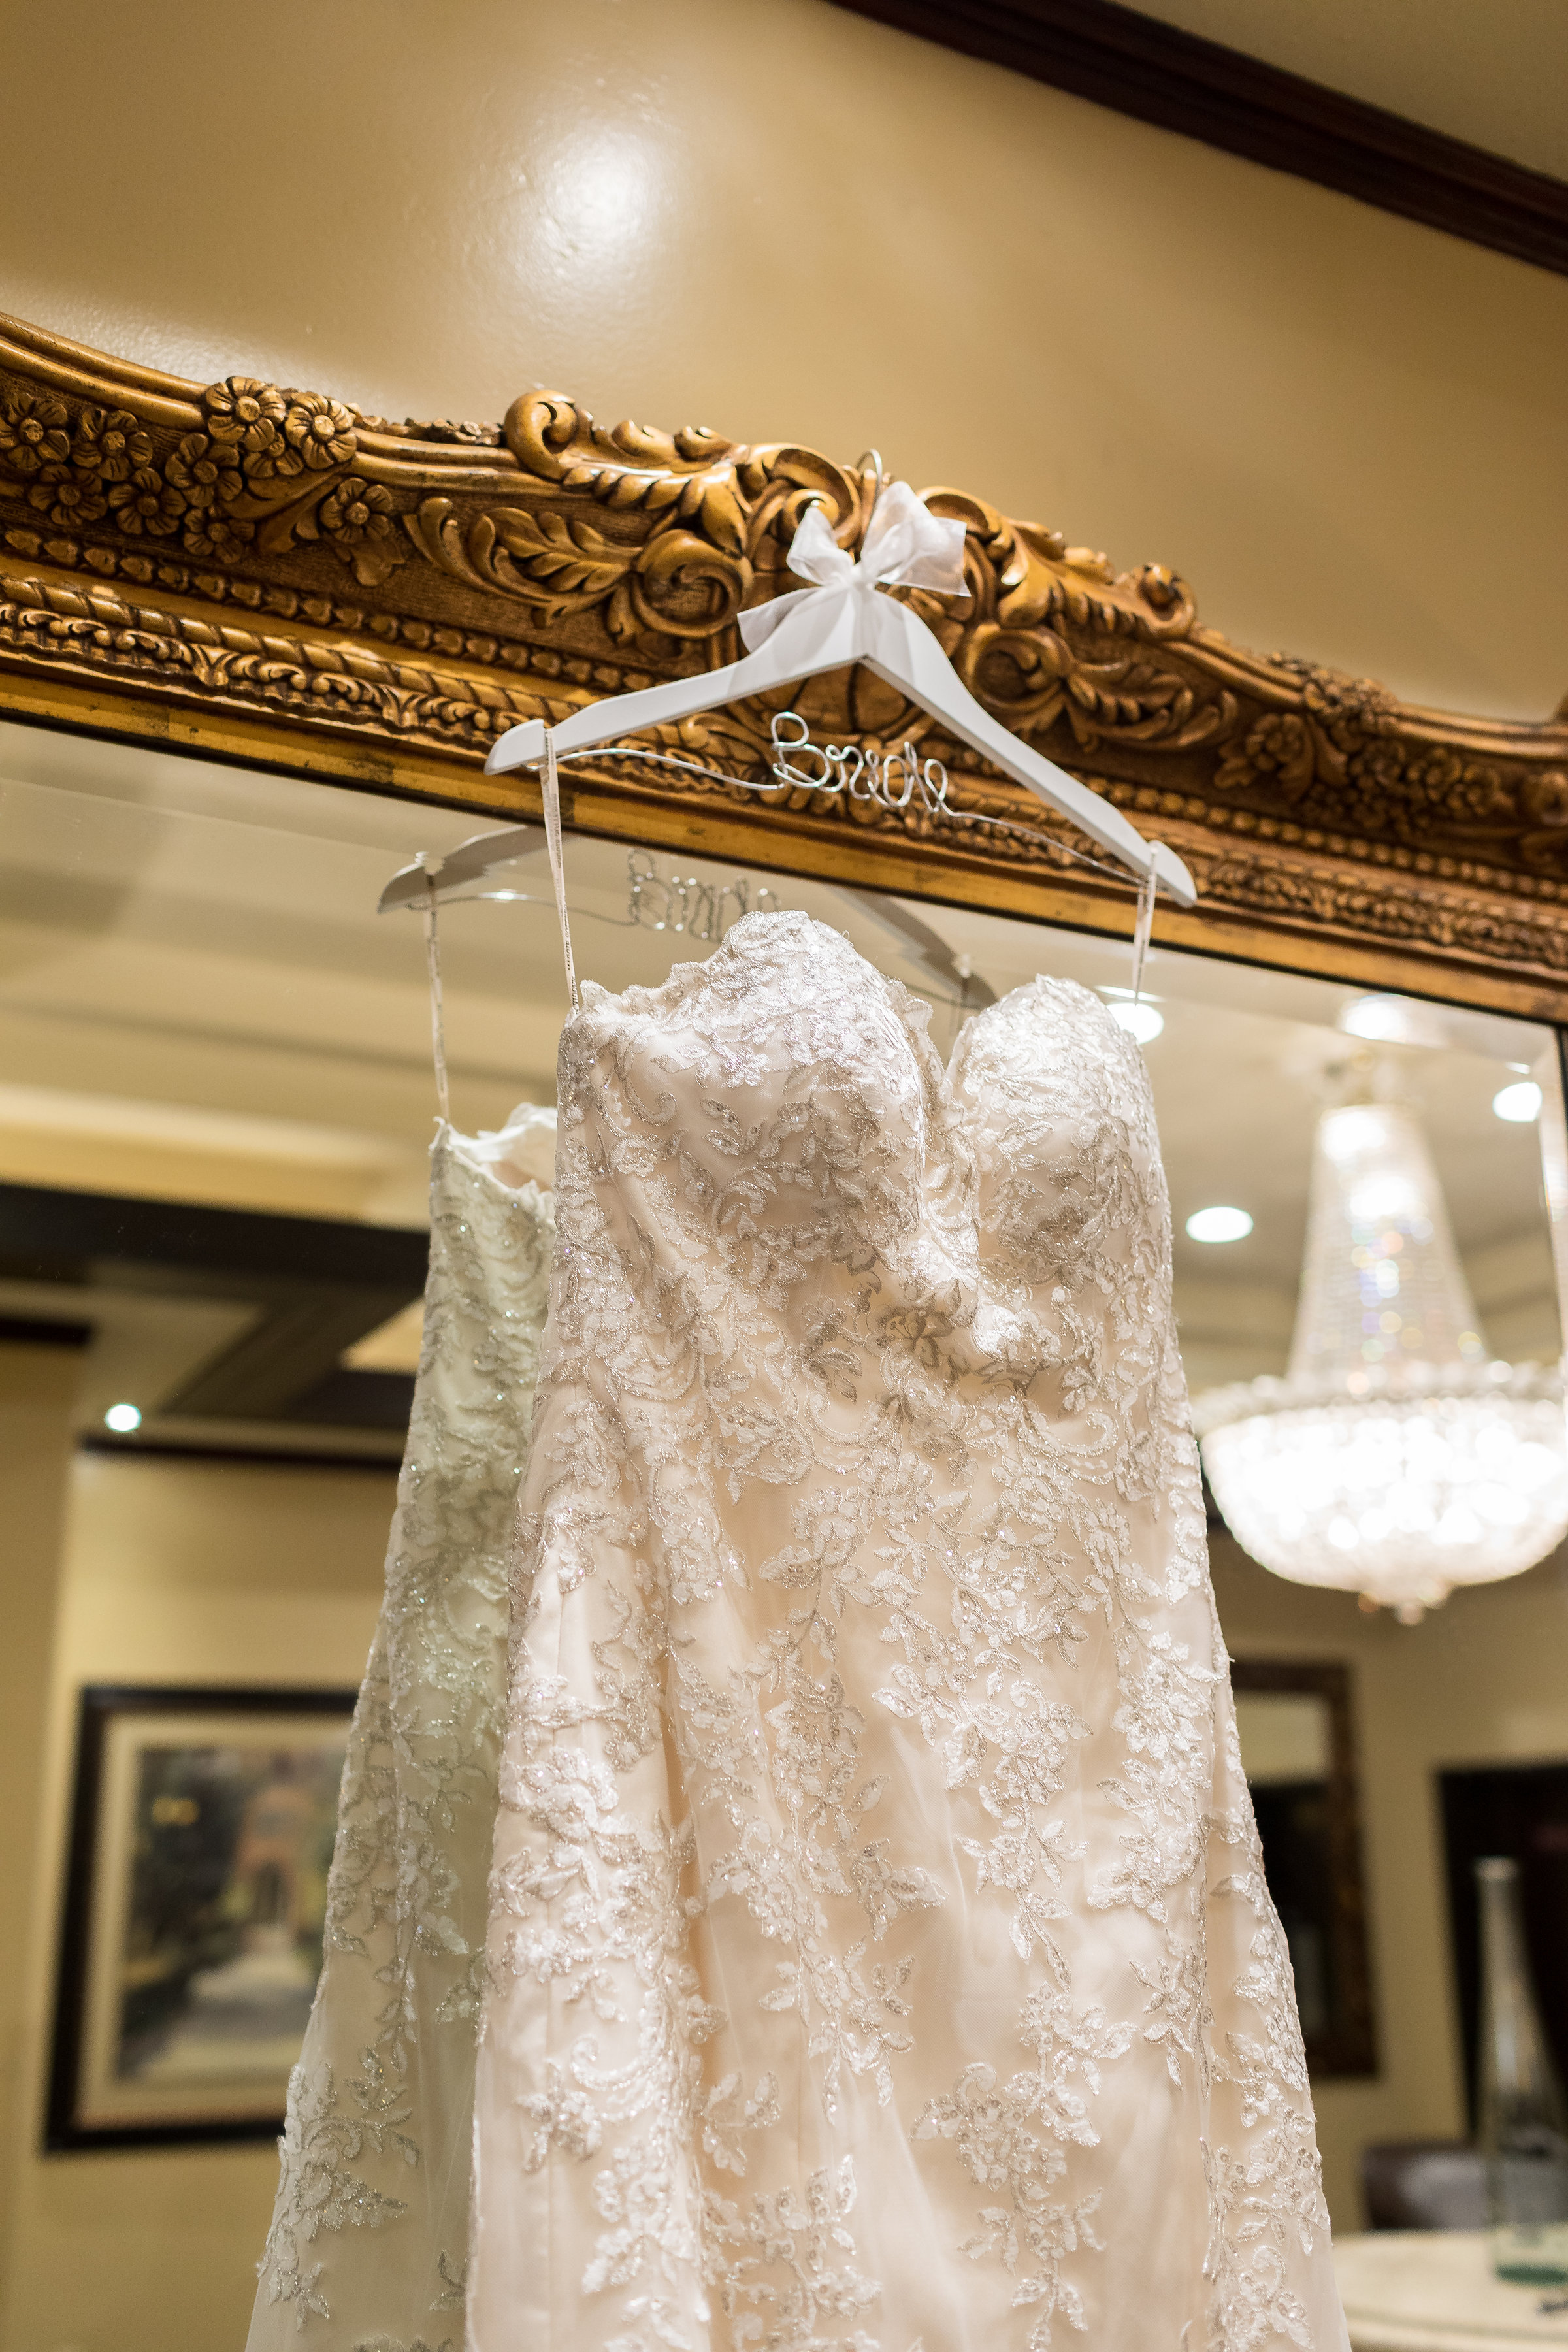 ! Hanging Dress Wedding Getting Ready Photography.jpg